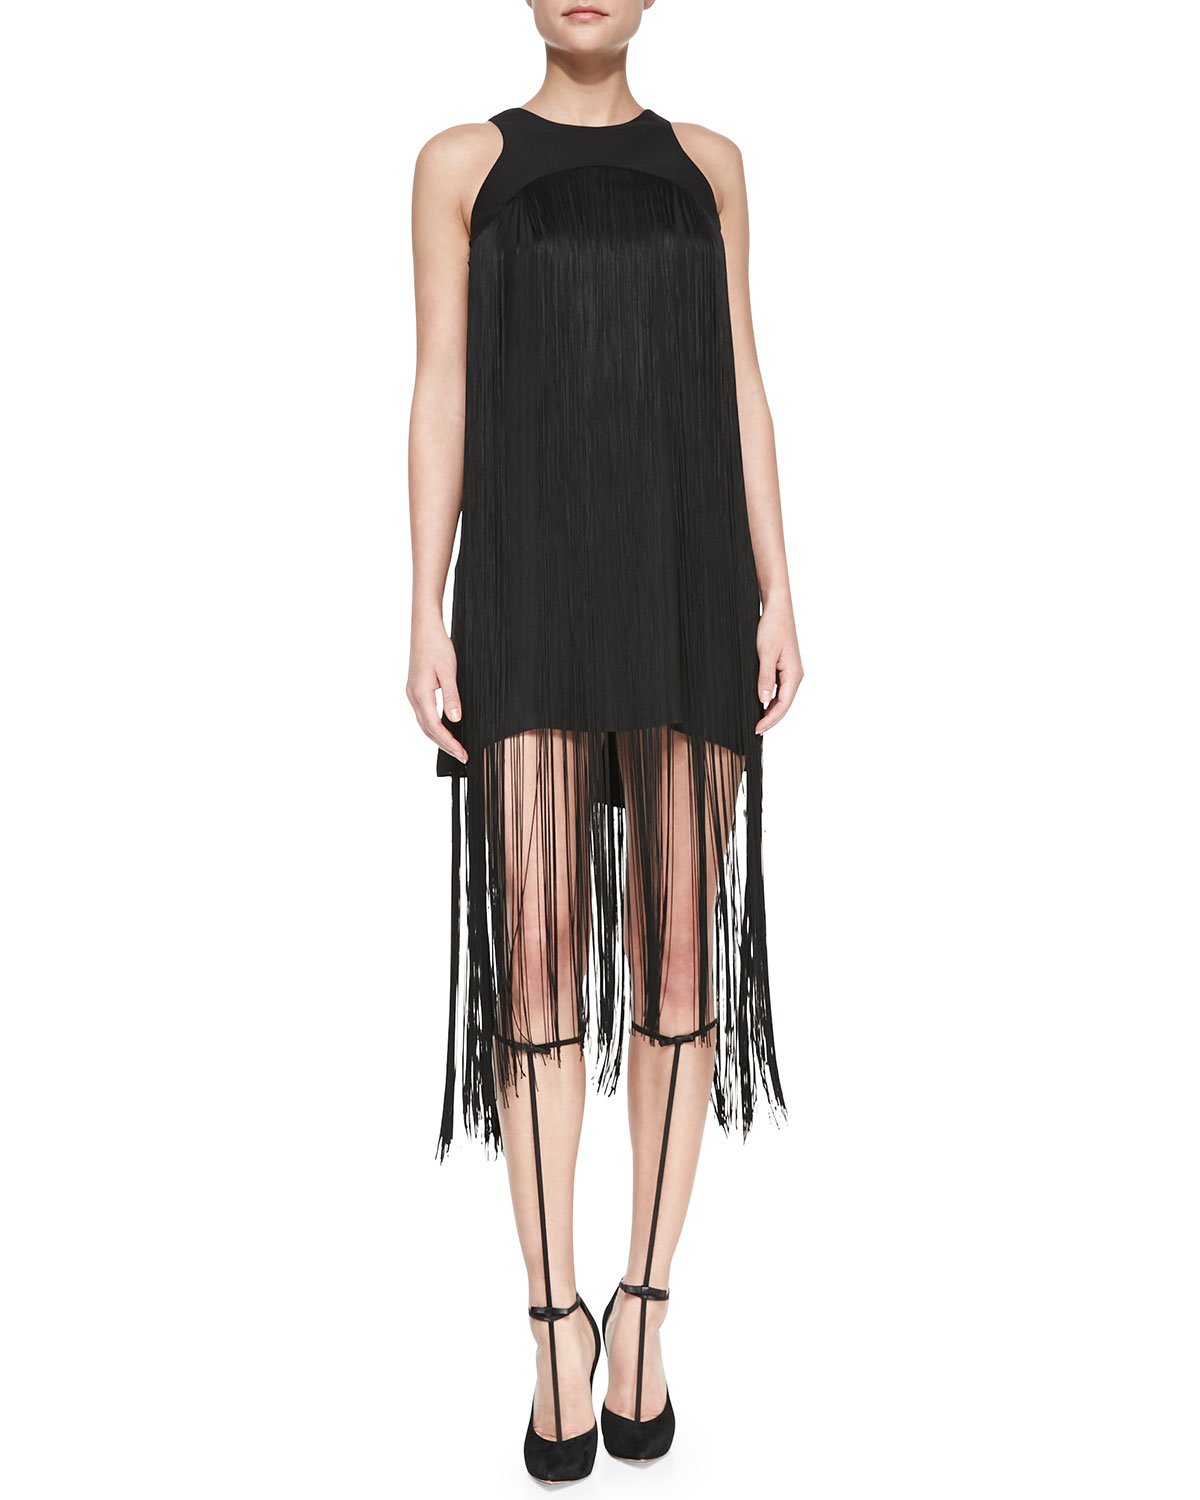 Alexis Vardenis Sleeveless Fringe-Overlay Dress